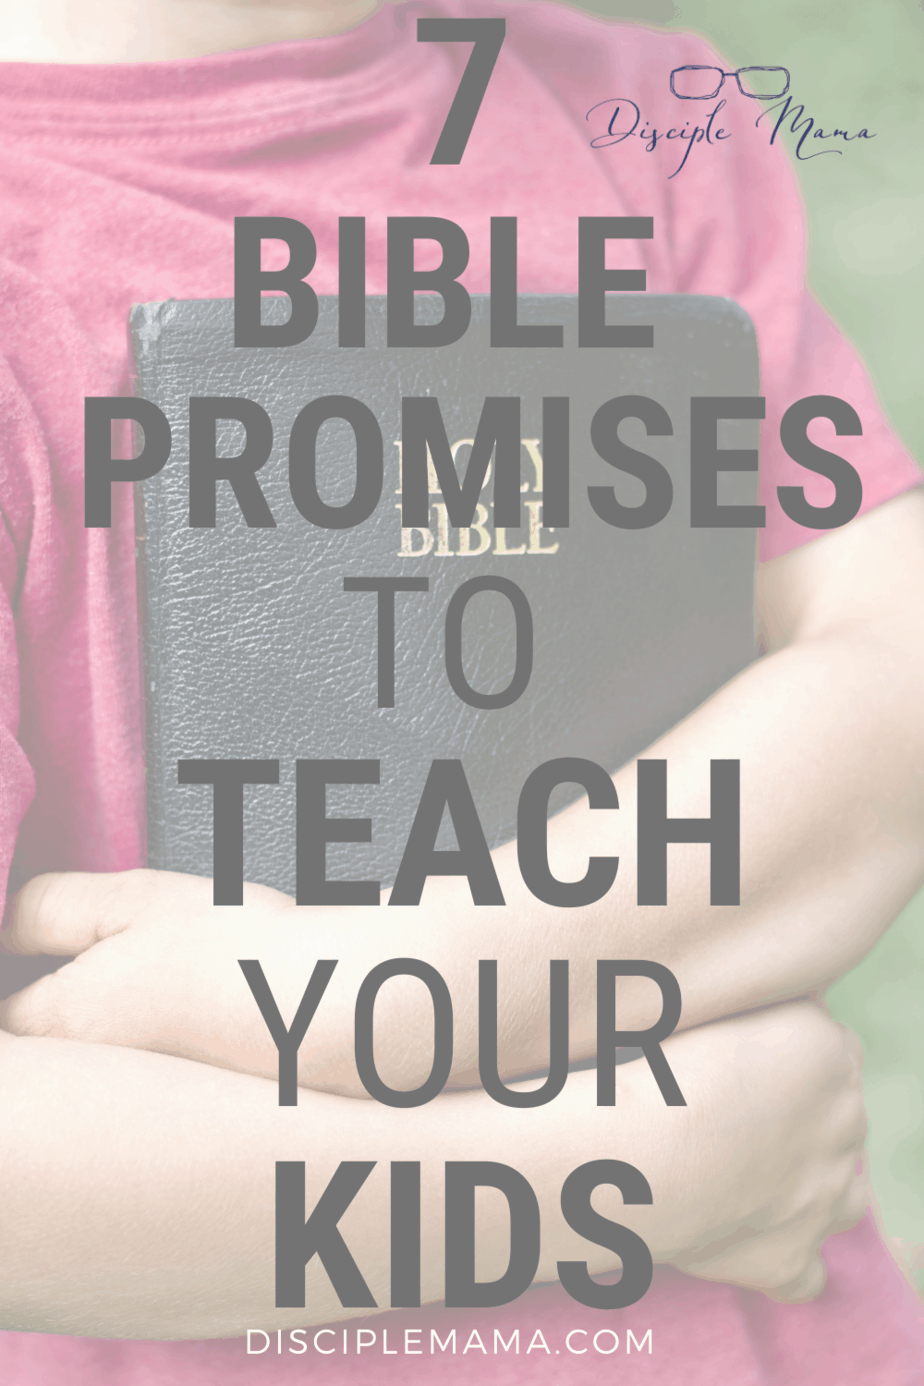 7 Bible Promises to Teach Your Kids | Disciple Mama